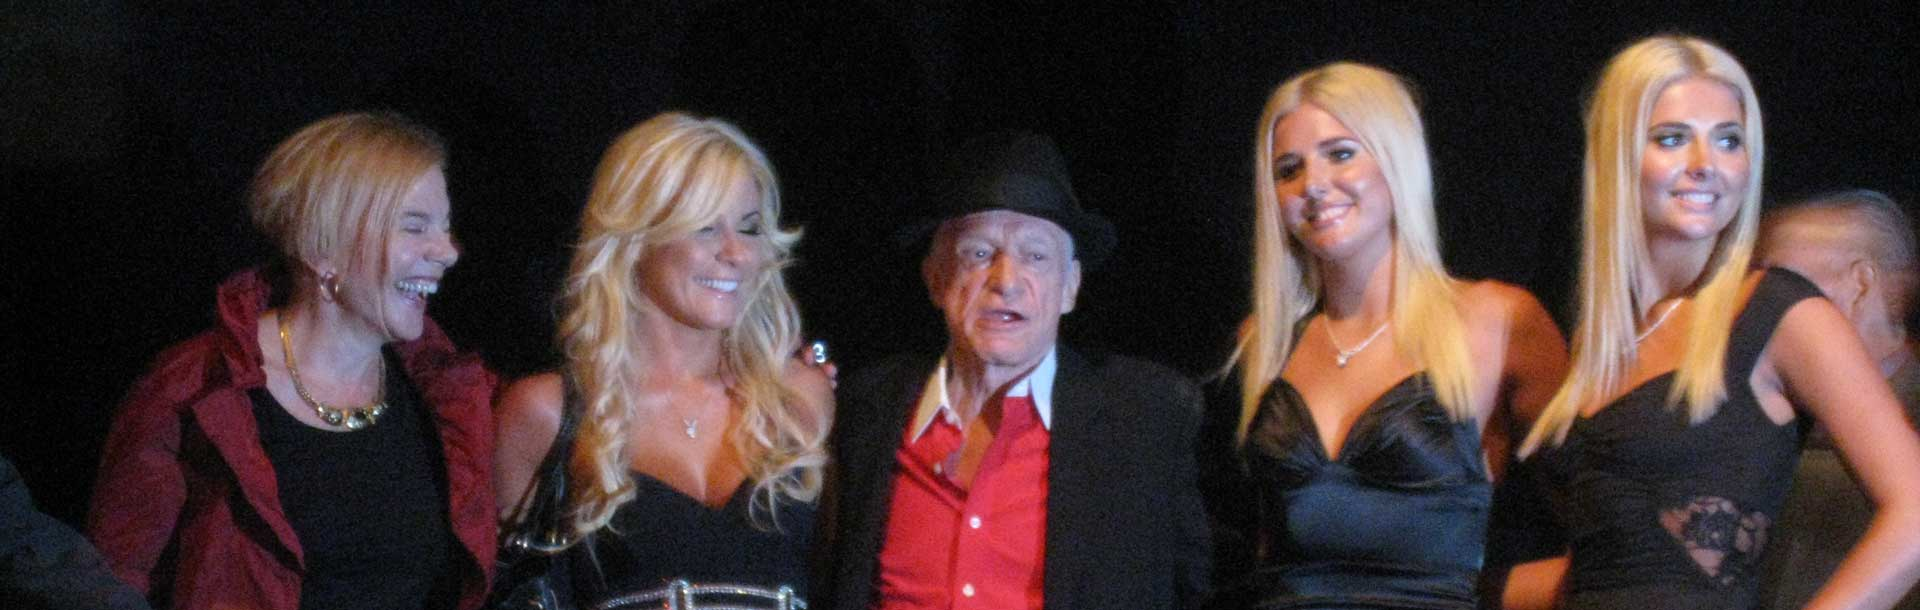 Happiness Versus Pleasure: The Legacy Of Hugh Hefner thumbnail